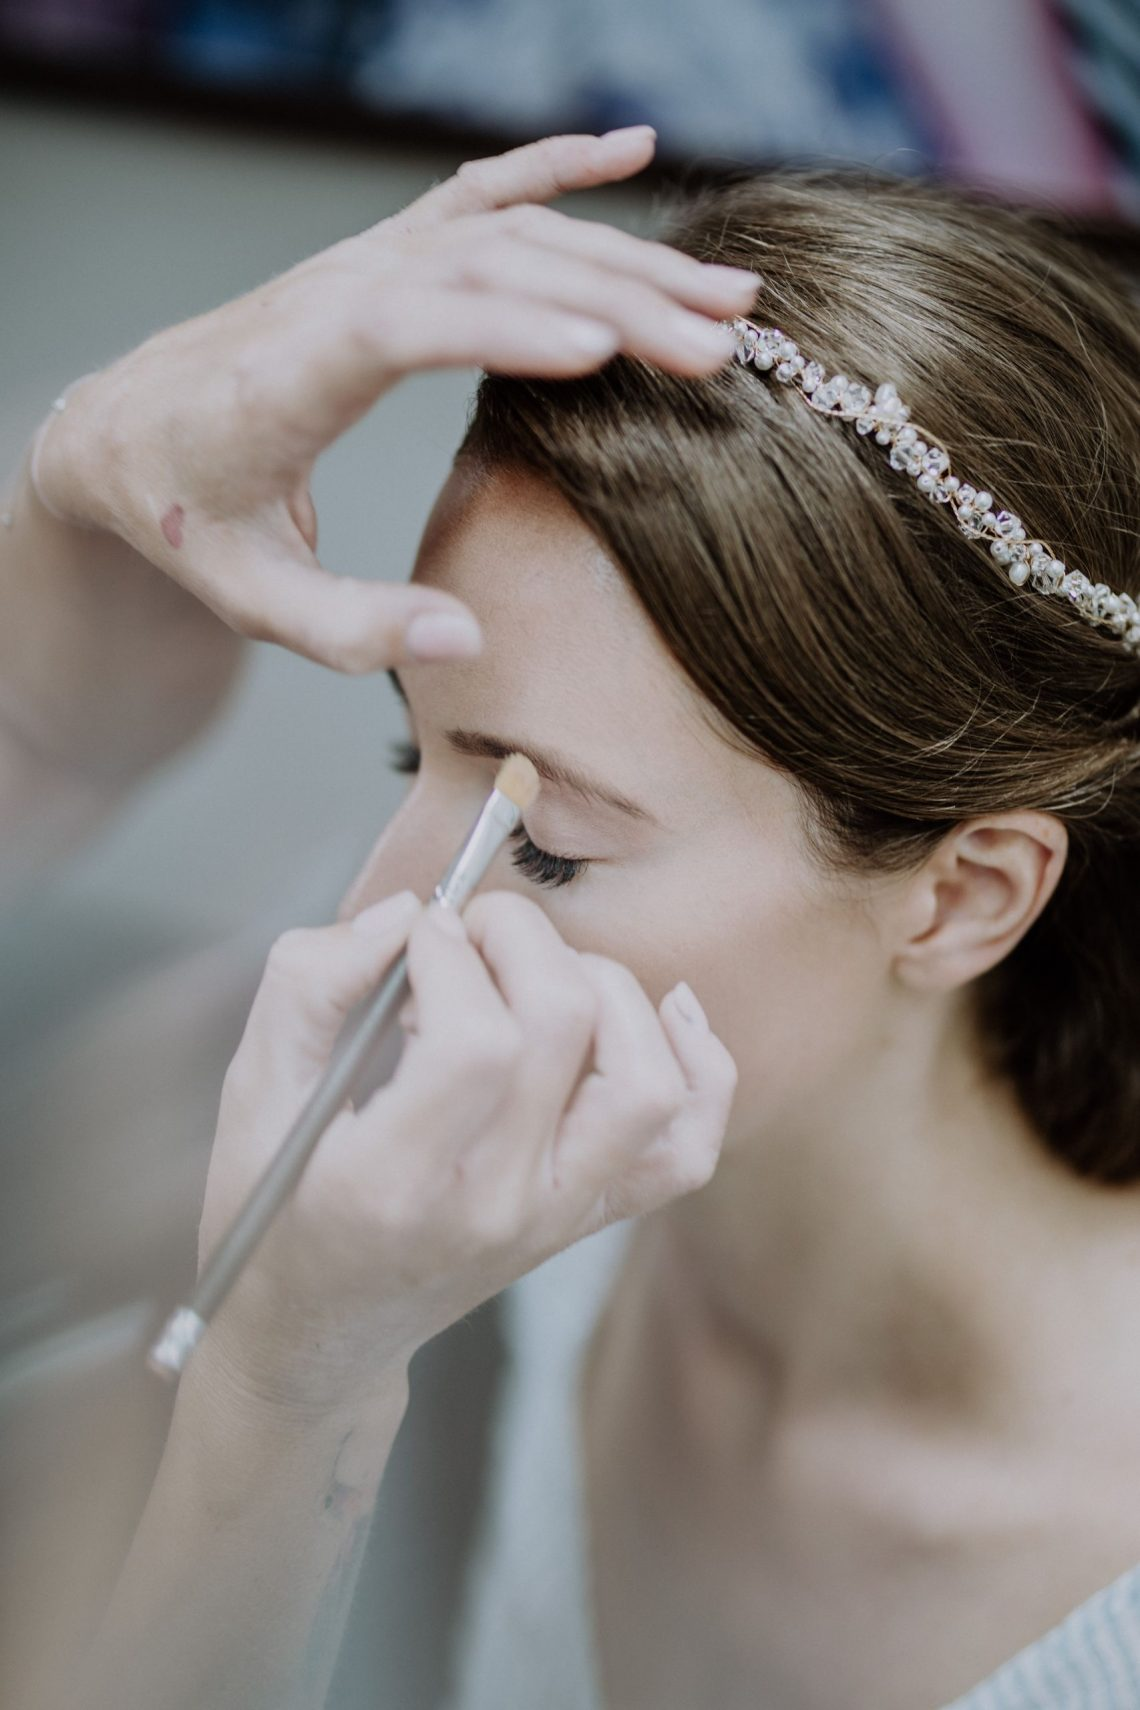 Wedding Hair & Make-Up Artists In Austria